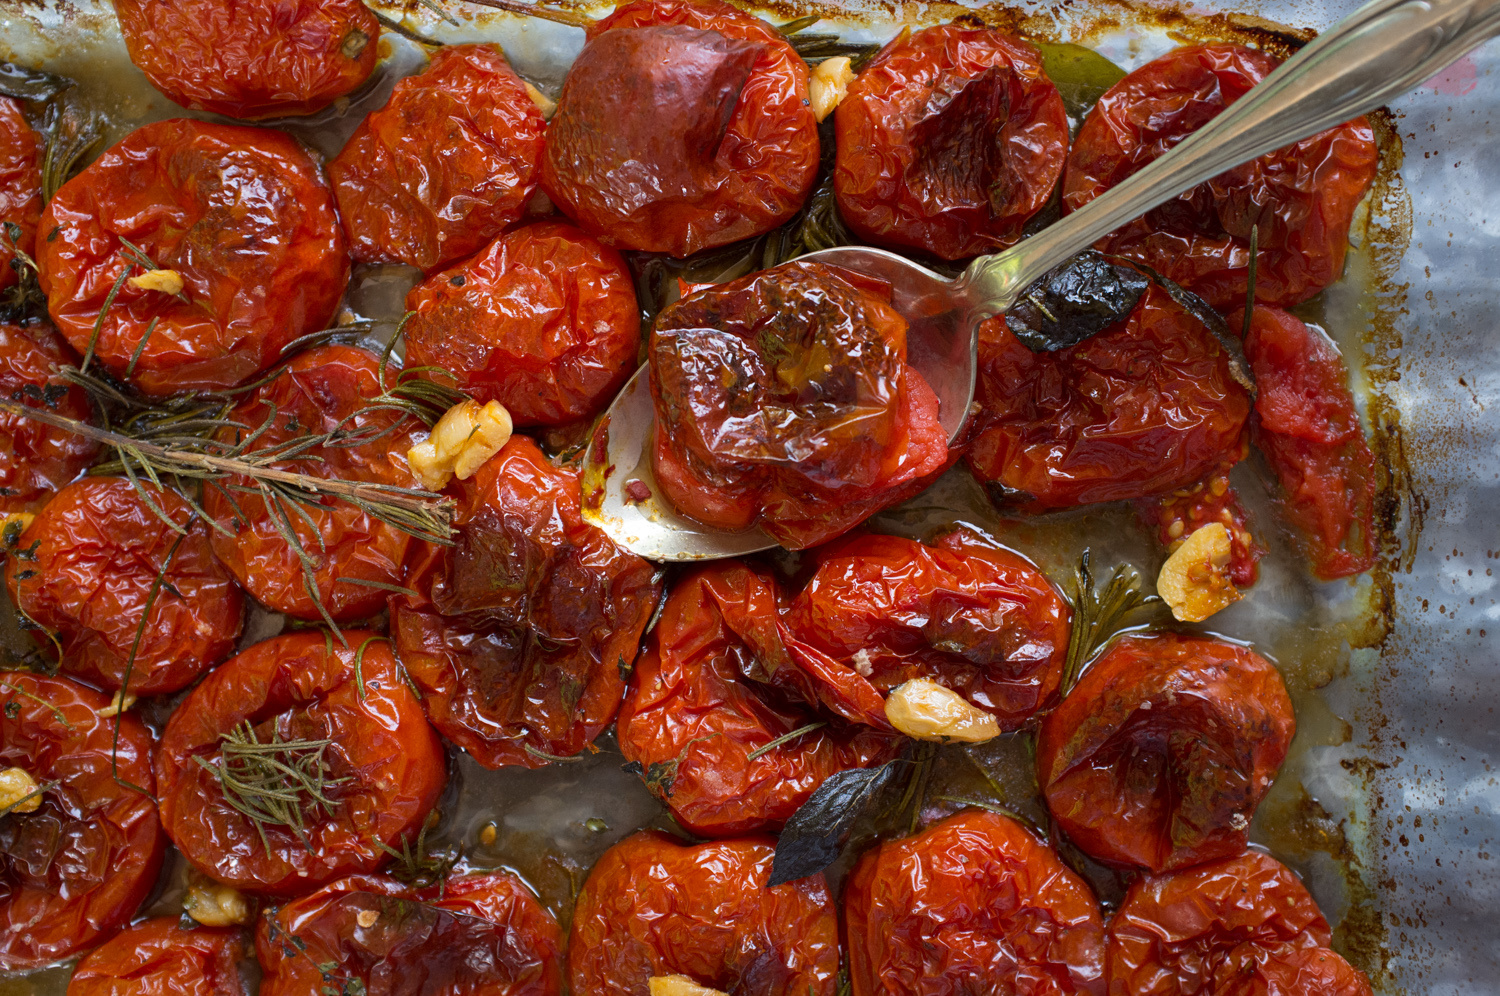 Cut the tomatoes, place in a glass rimmed baking sheet, drizzle with olive oil, add fresh herbs, and roast for hours .